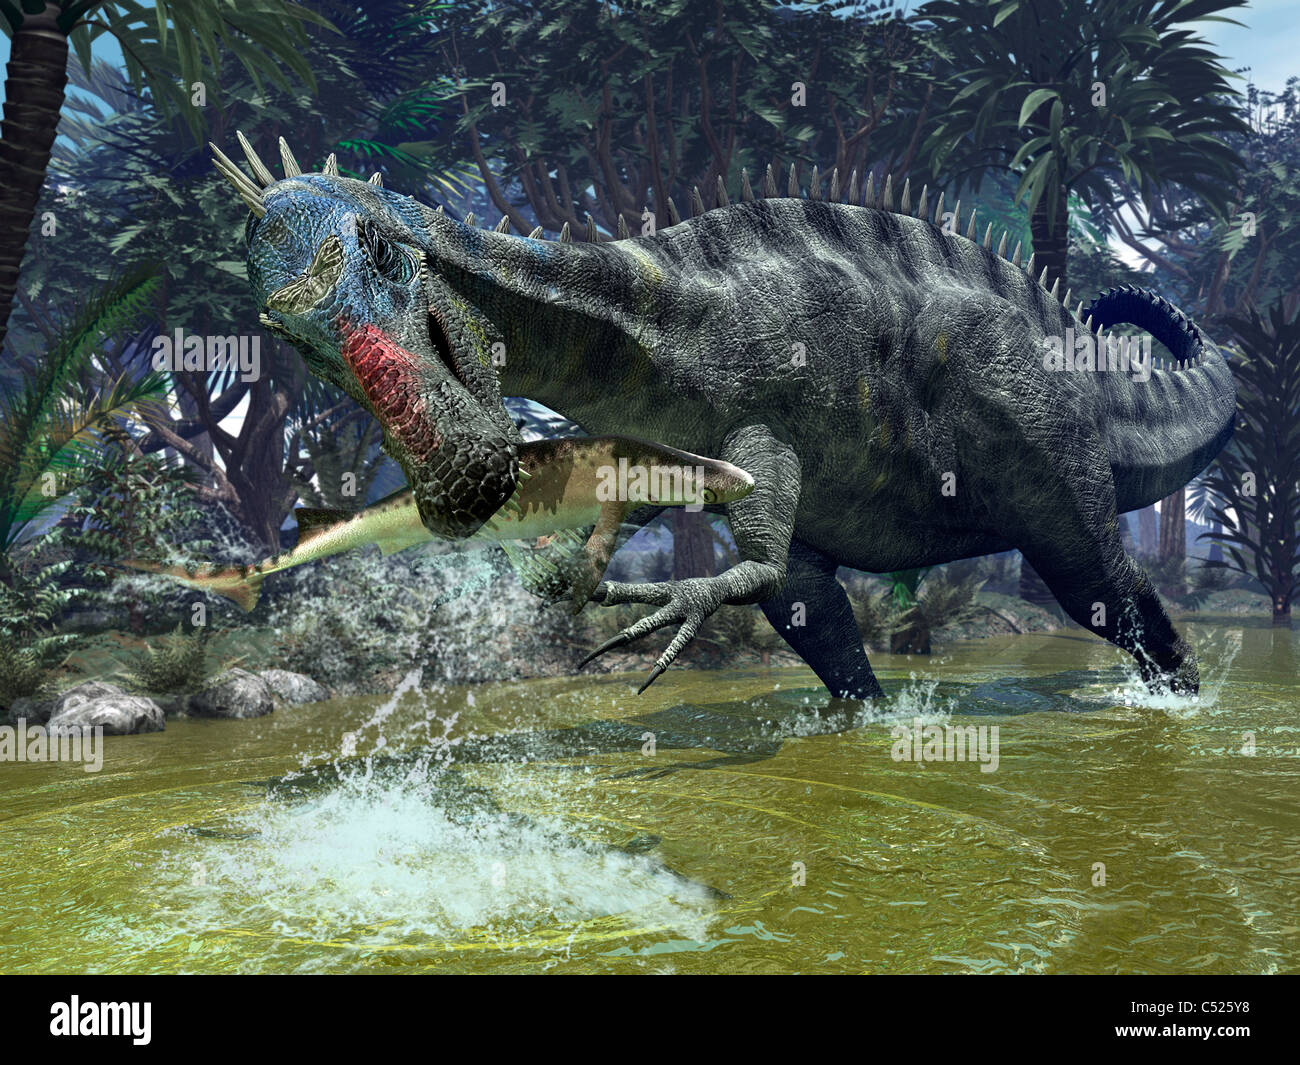 A Suchomimus snags a shark from a lush estuary. - Stock Image